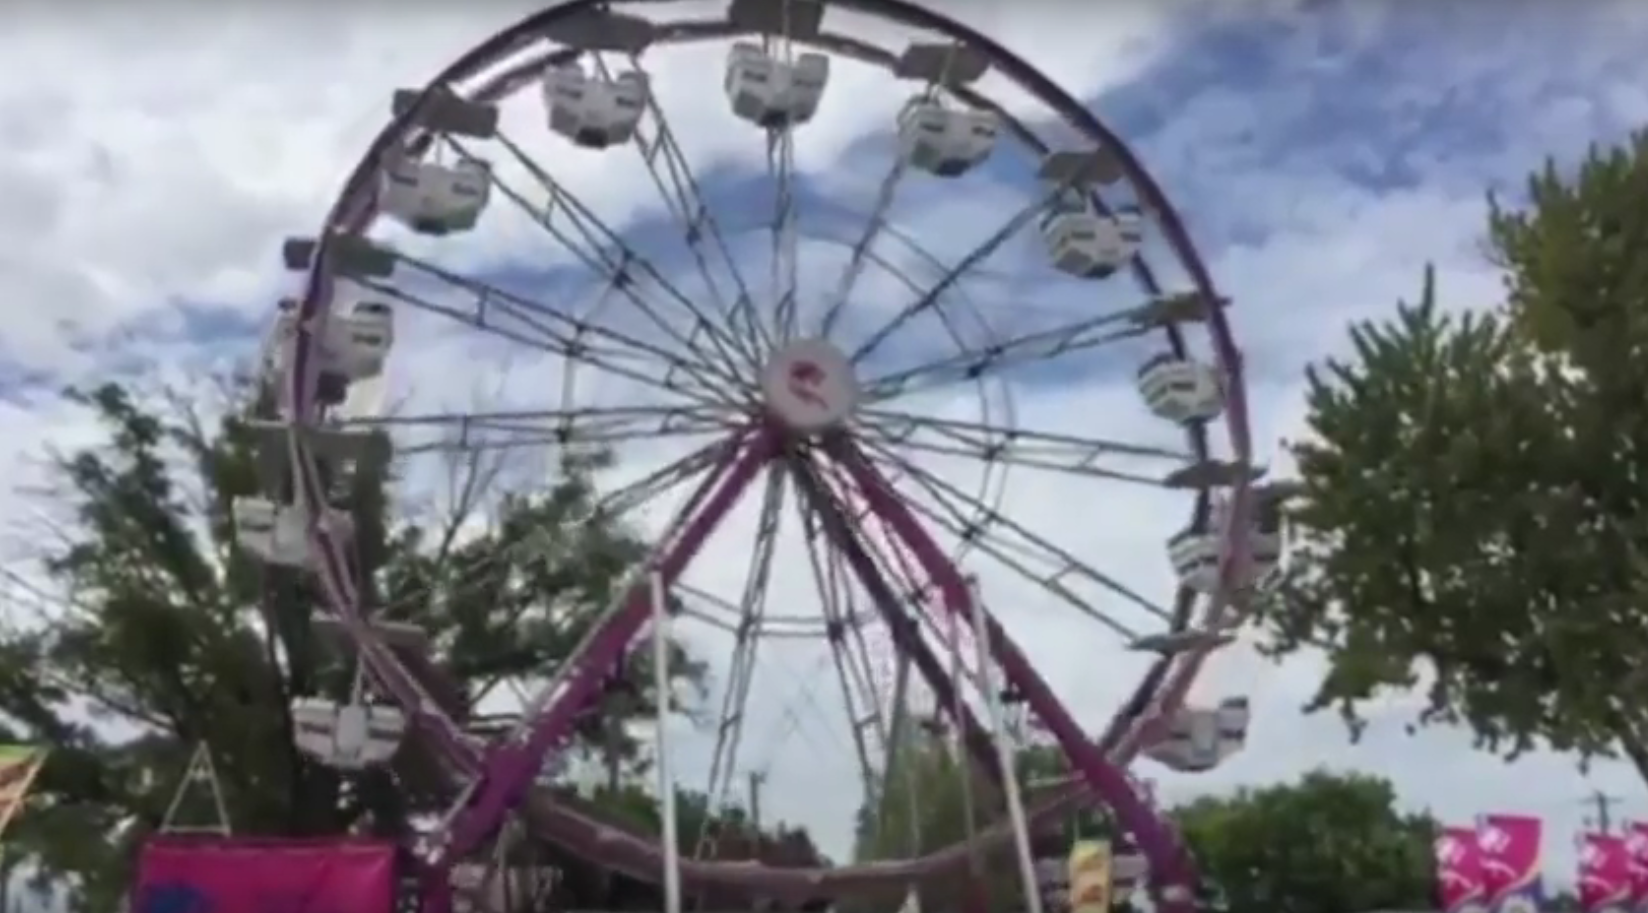 Western Fair Offers New Attractions